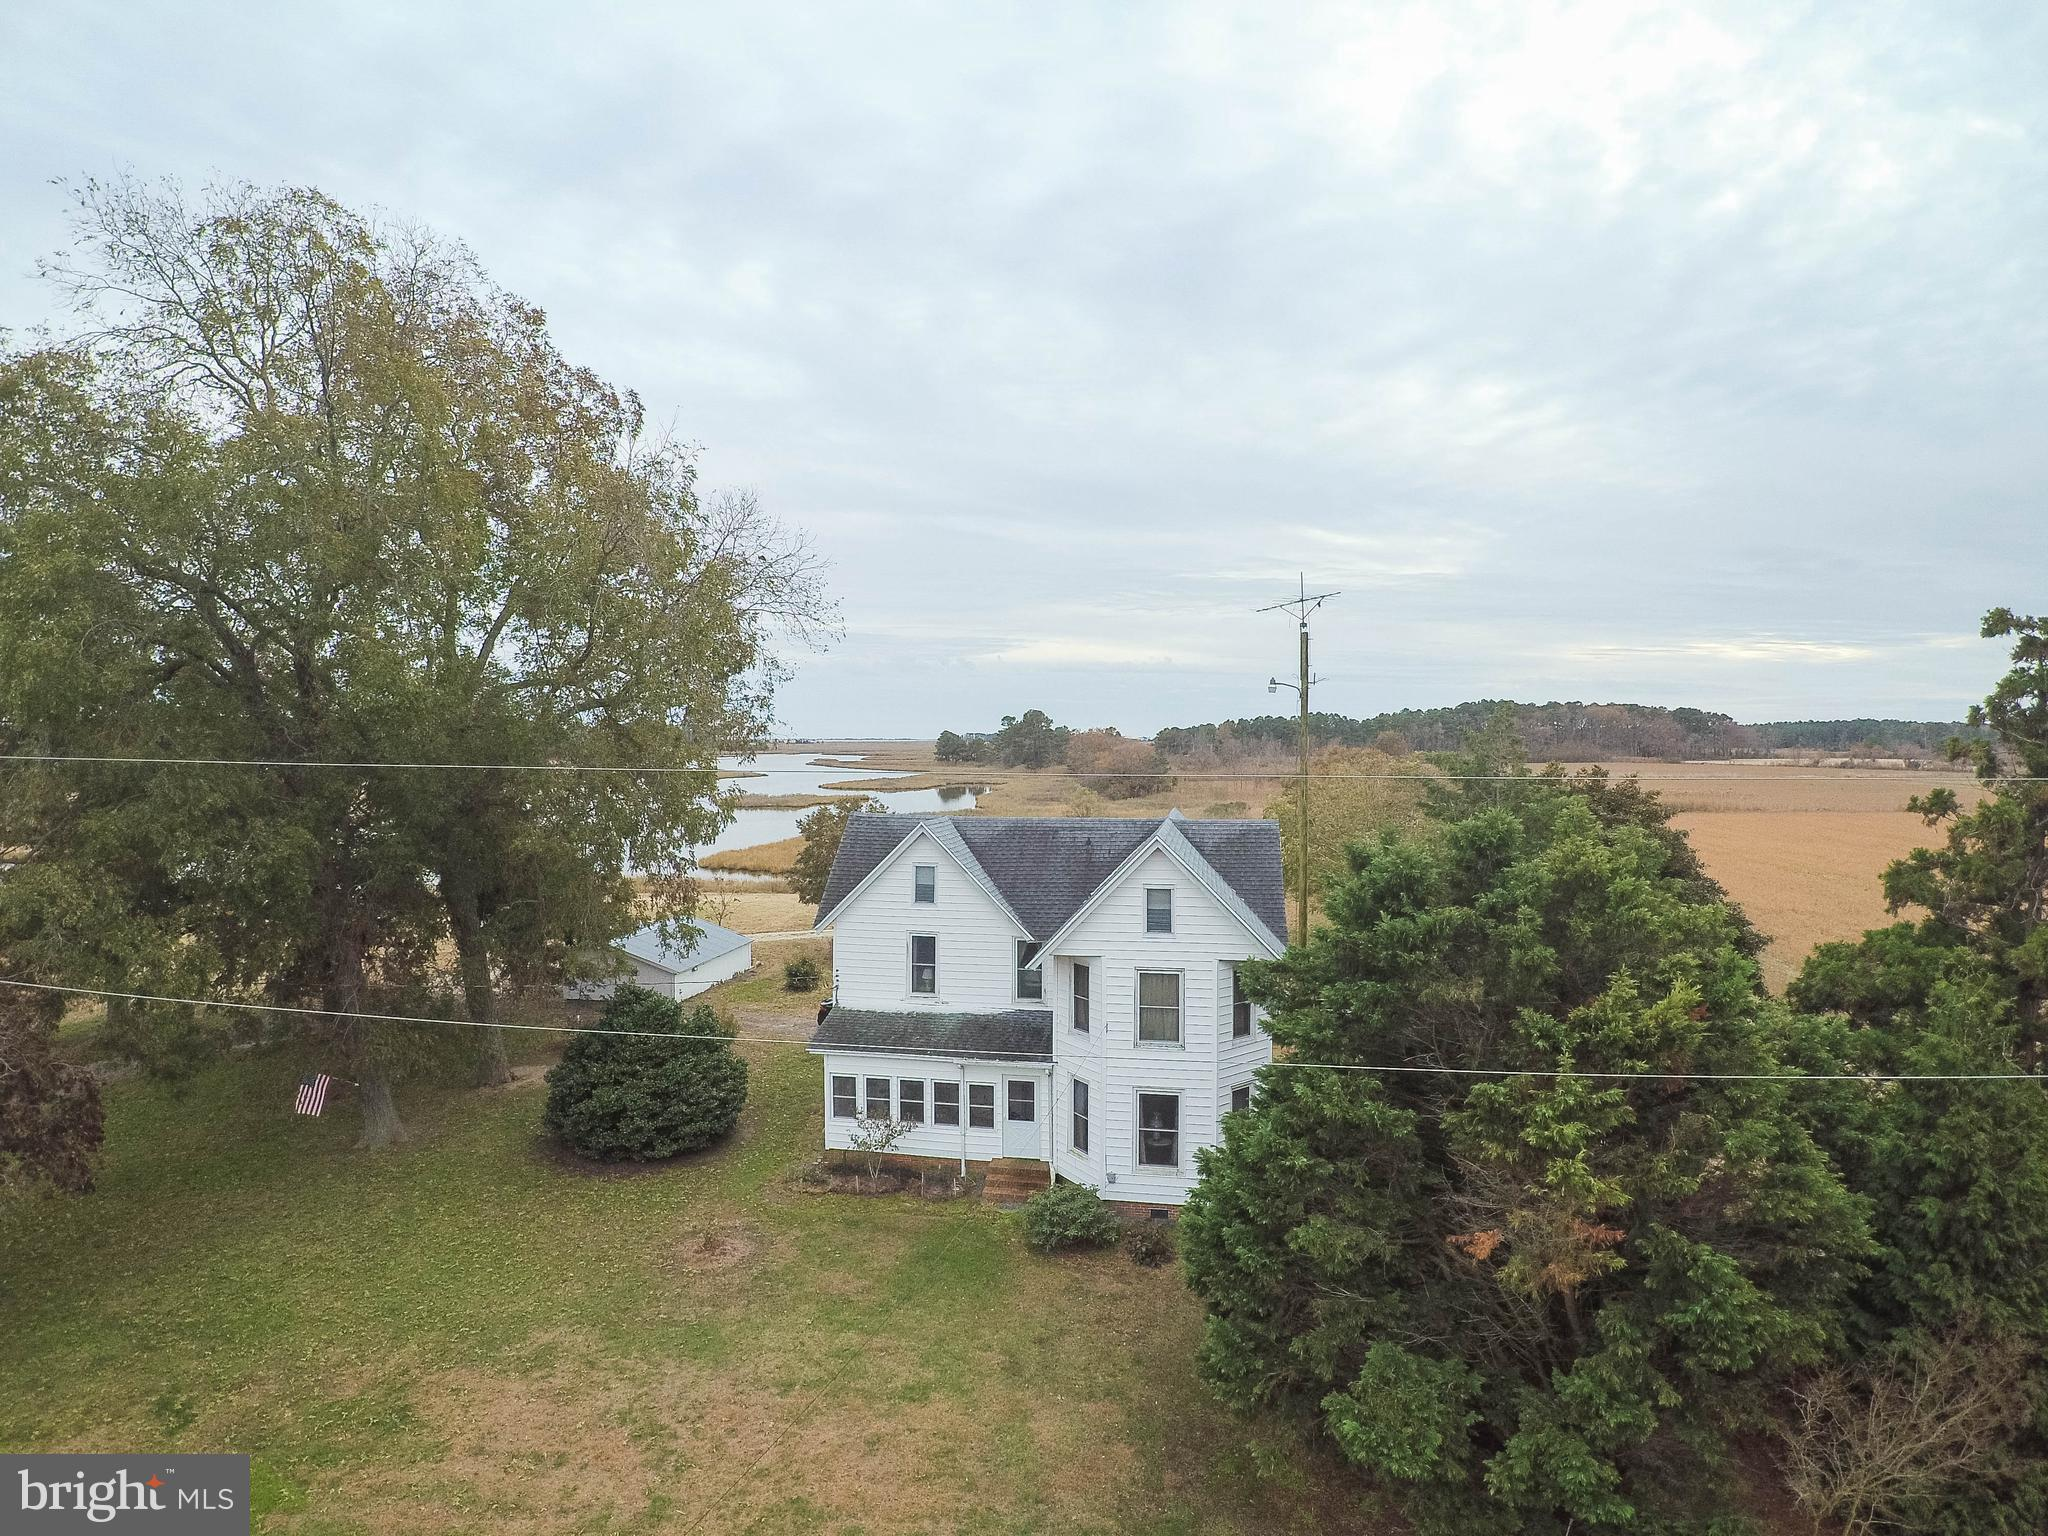 28673 LQ POWELL ROAD, MARION STATION, MD 21838